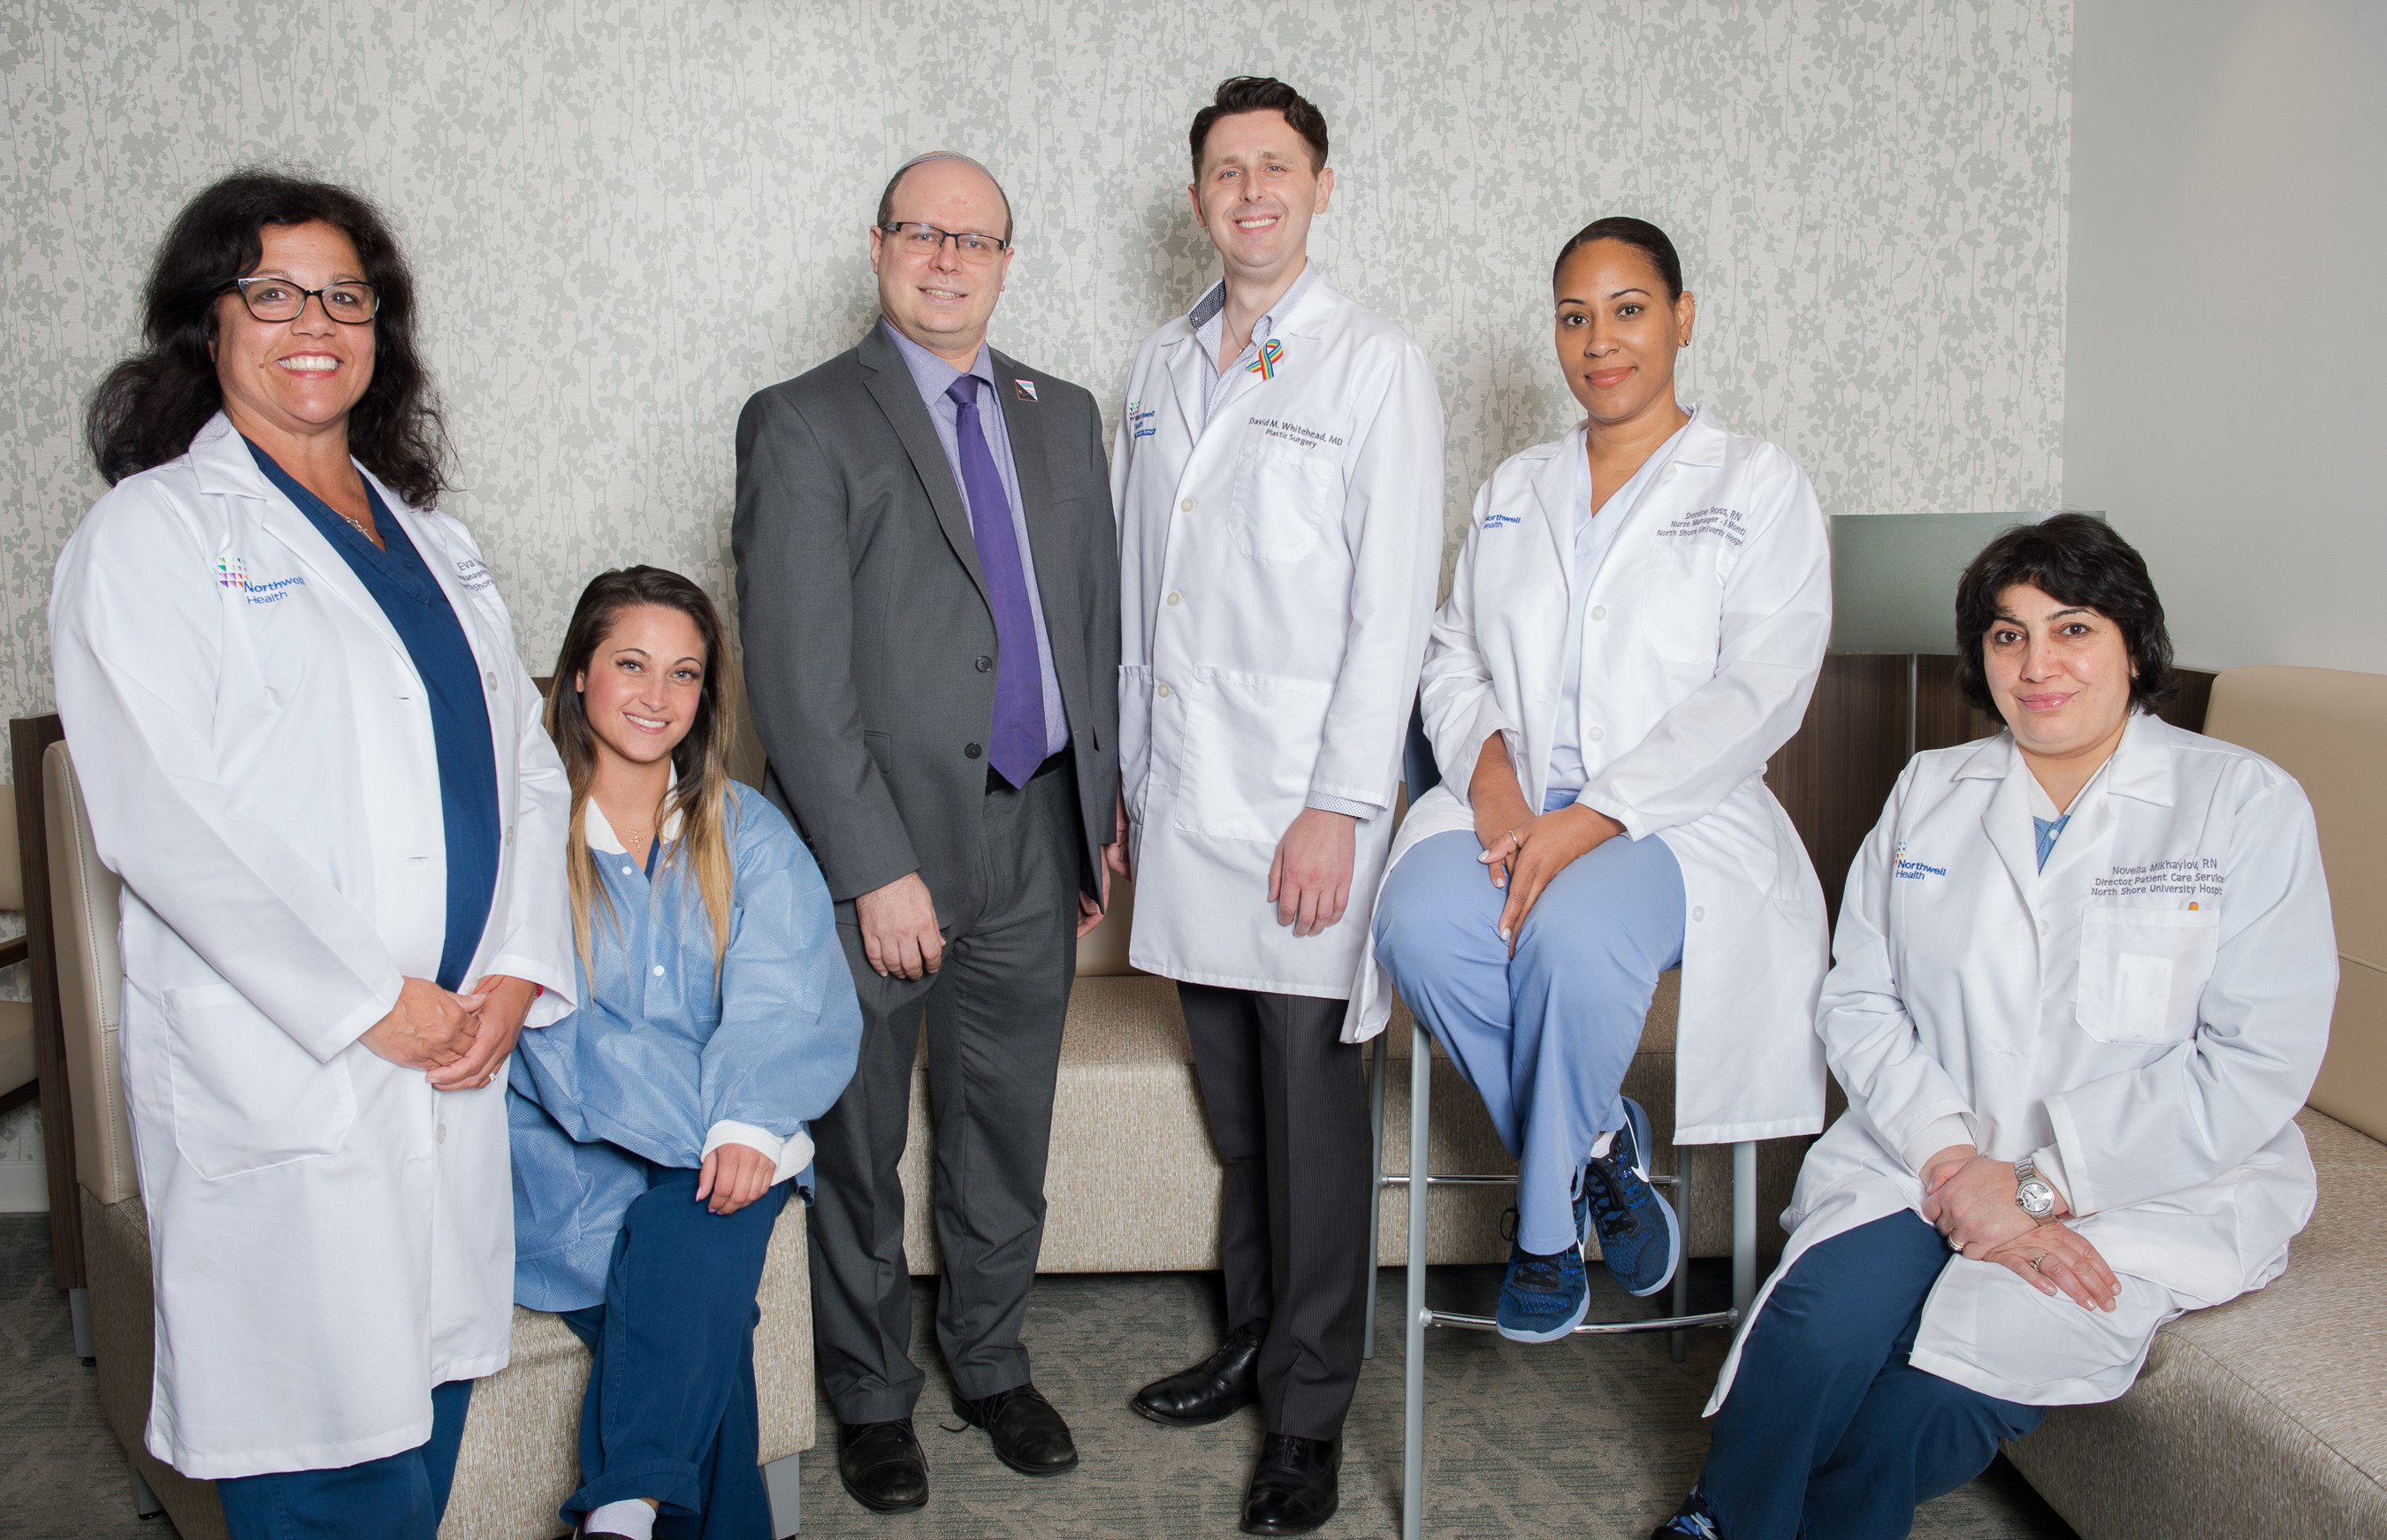 North Shore University Hospital is first on Long Island to